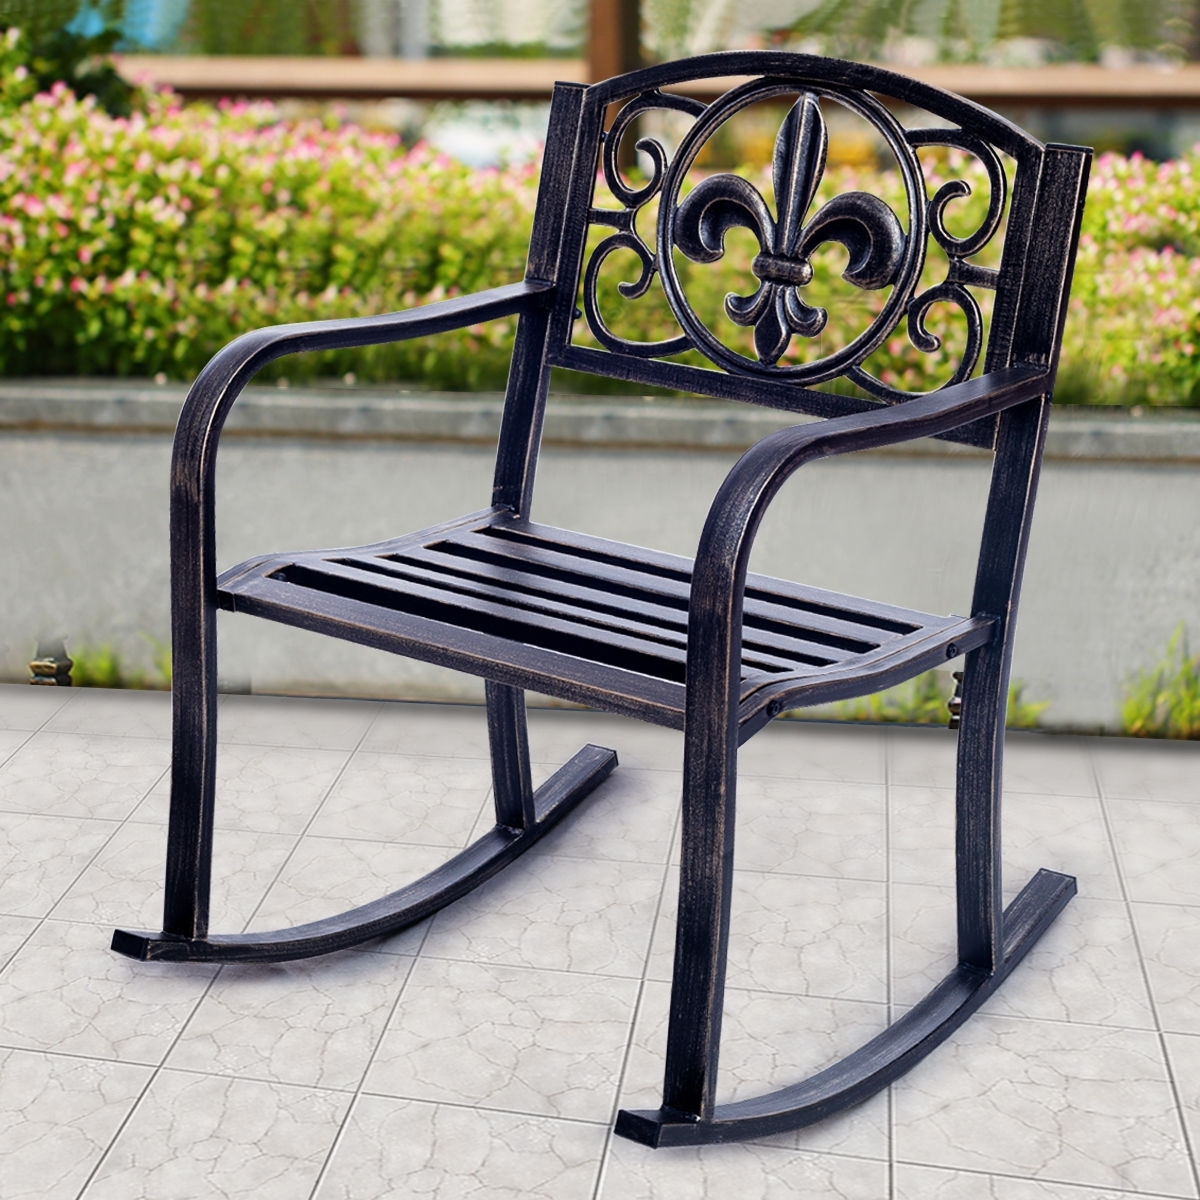 Famous Costway: Costway Patio Metal Rocking Chair Porch Seat Deck Outdoor Intended For Outdoor Patio Metal Rocking Chairs (View 7 of 15)